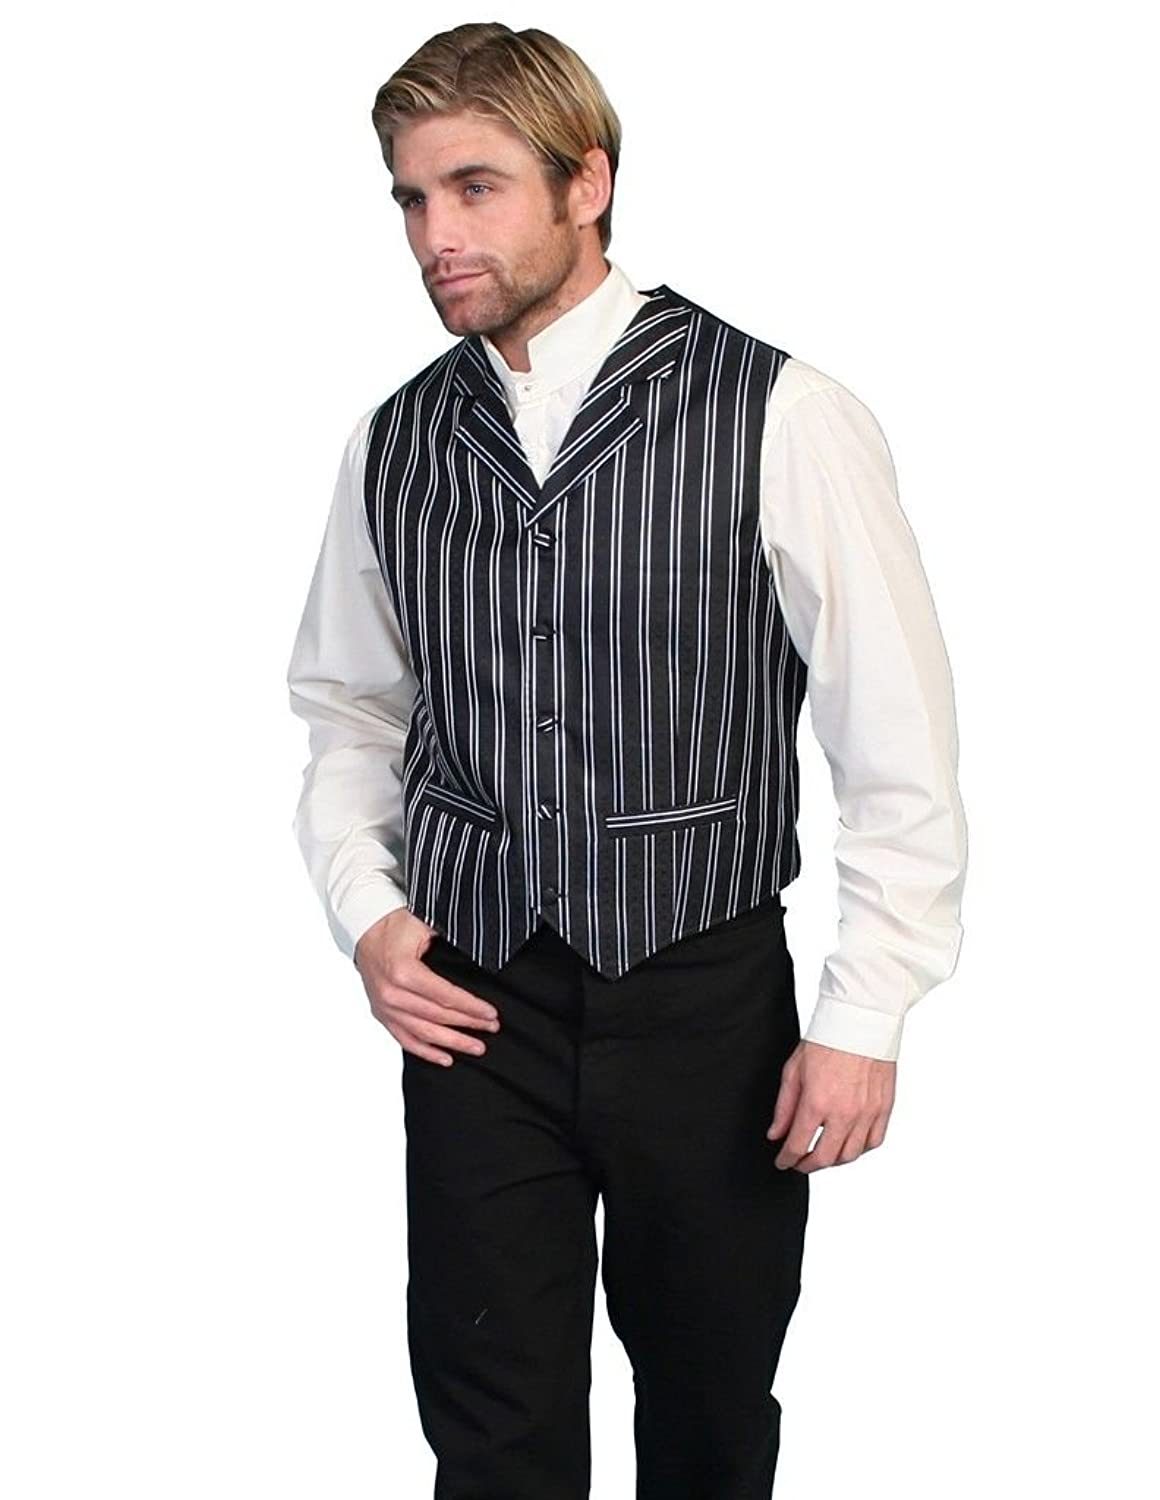 Men's Vintage Vests, Sweater Vests Rangewear By Scully Mens Rangewear Double Pinstripe Vest Big And Tall - Rw169x Blk $55.05 AT vintagedancer.com